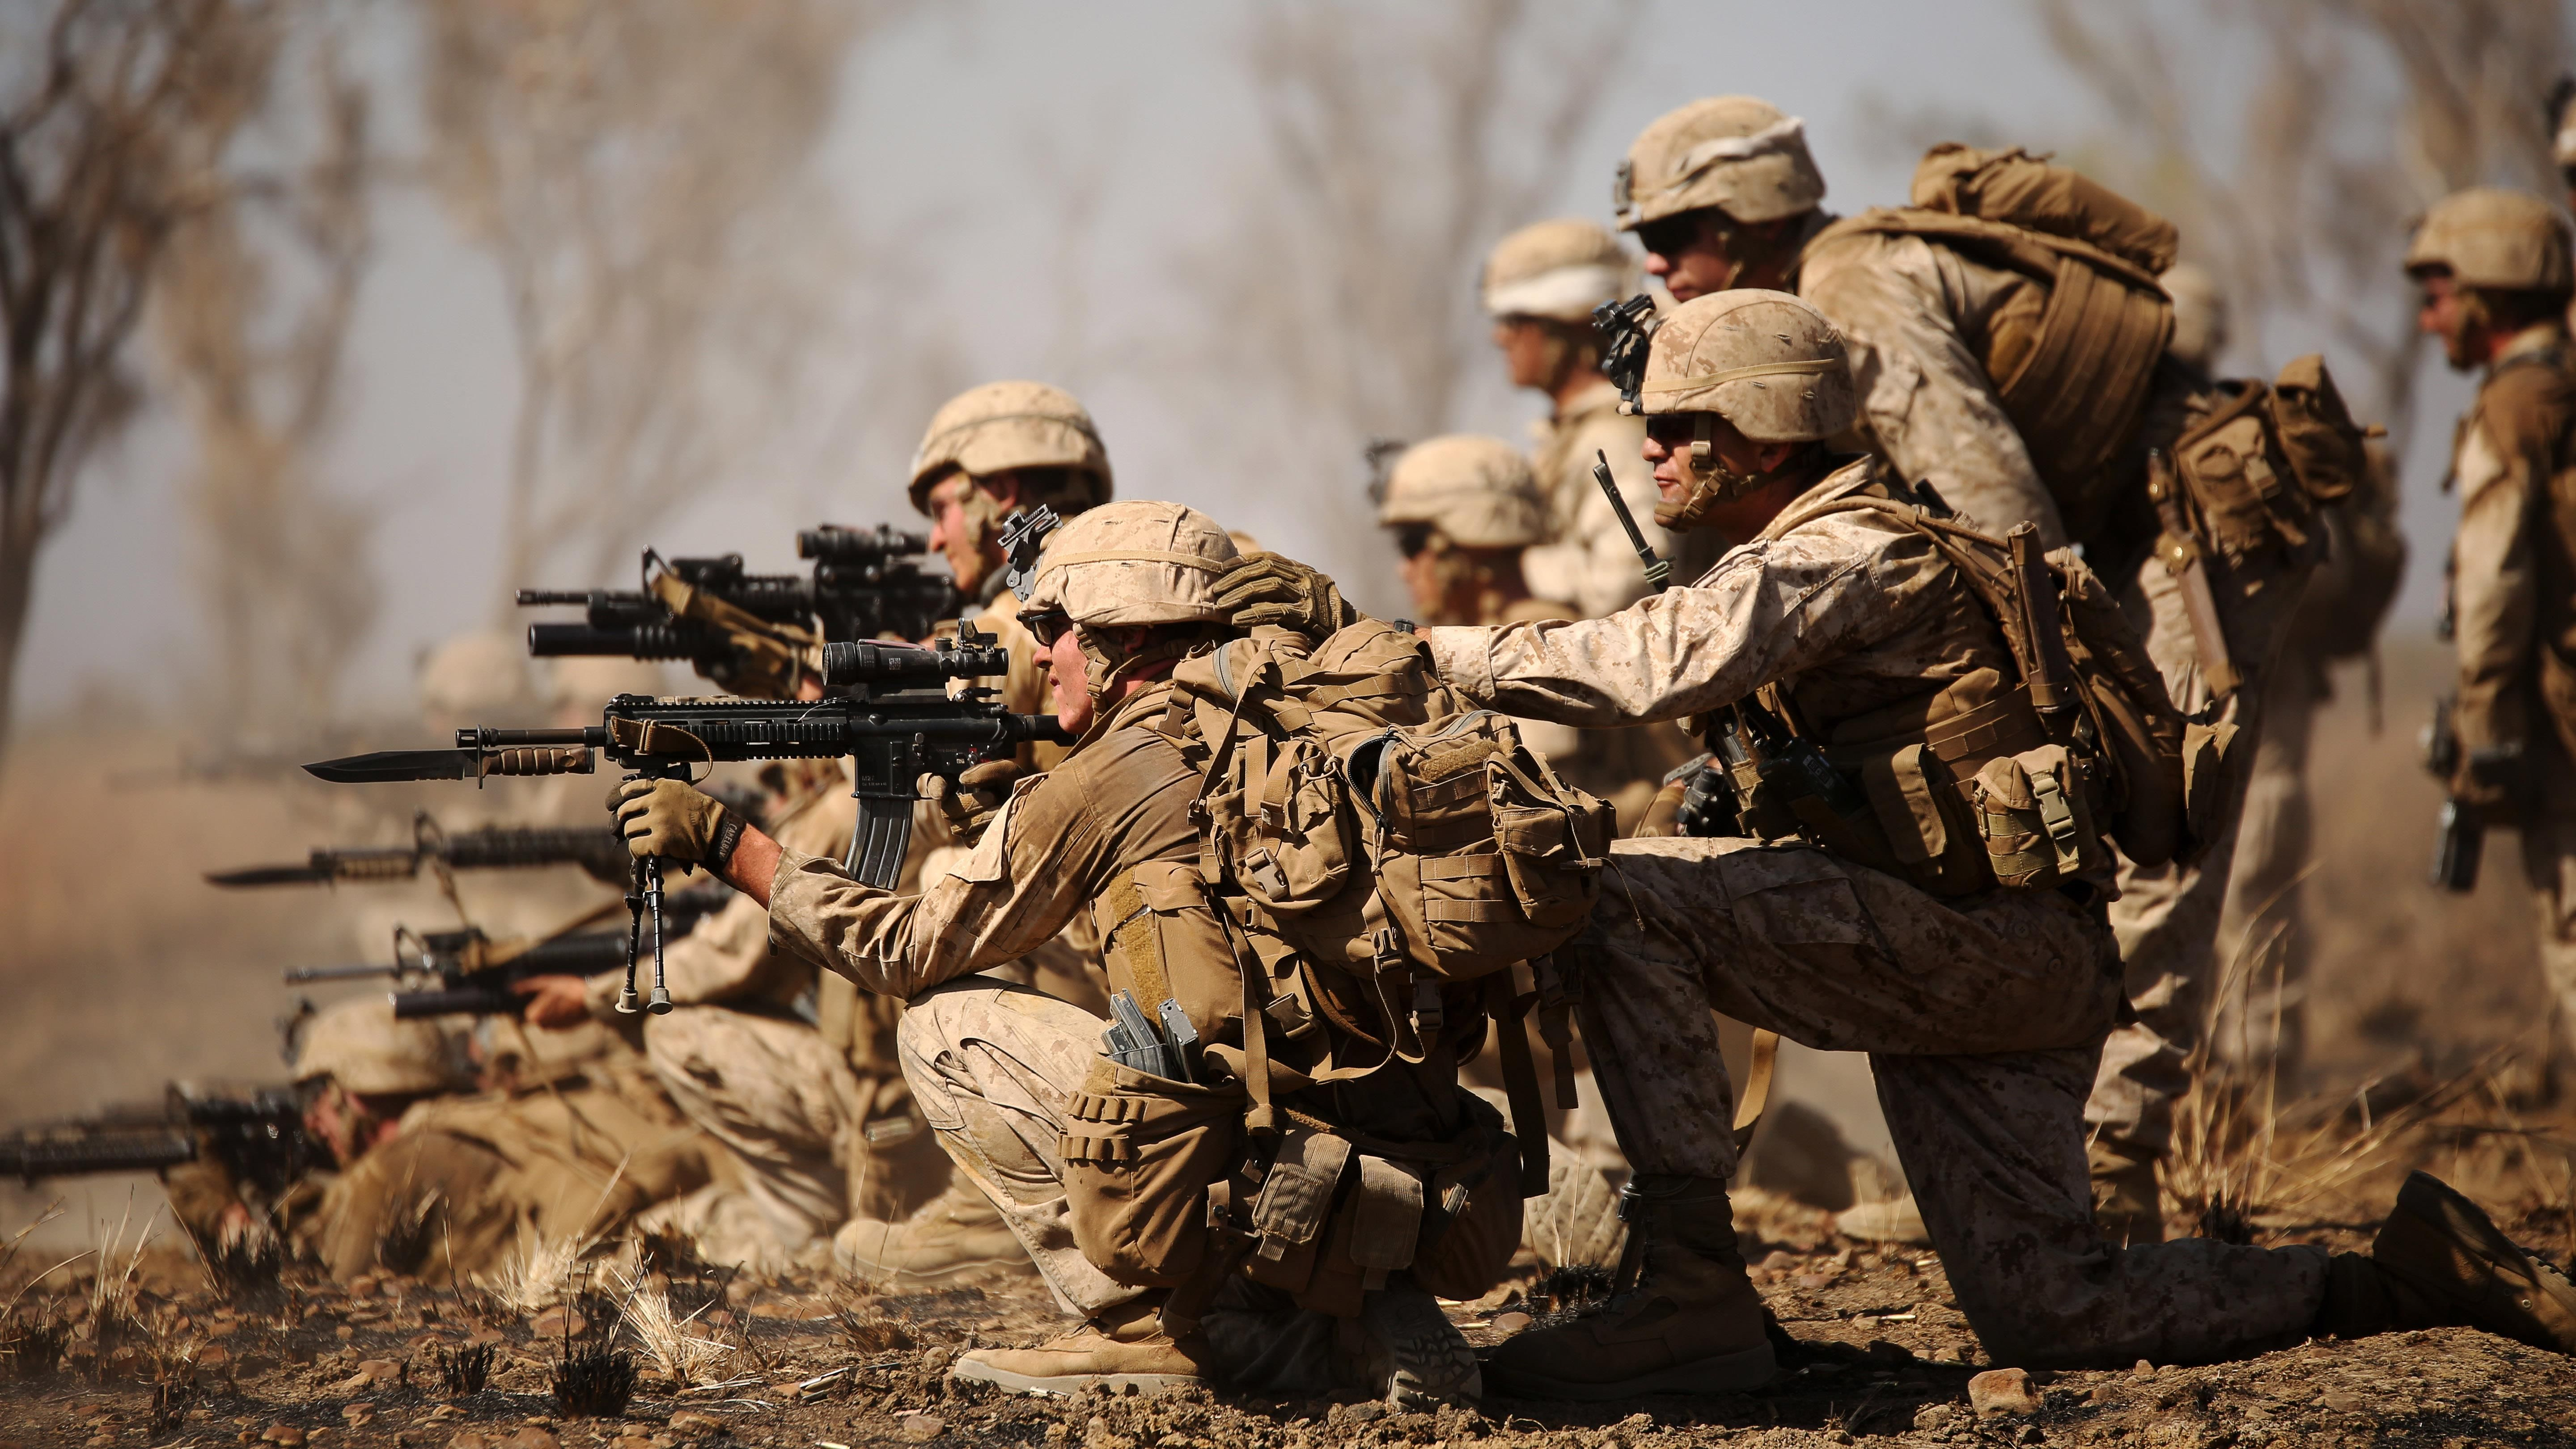 Marines with Company B, 1st Battalion, 1st Marine Regiment, attack an objective during a live-fire range movement at Bradshaw Field Training Area, Northern Territory, Australia, August 10, 2016